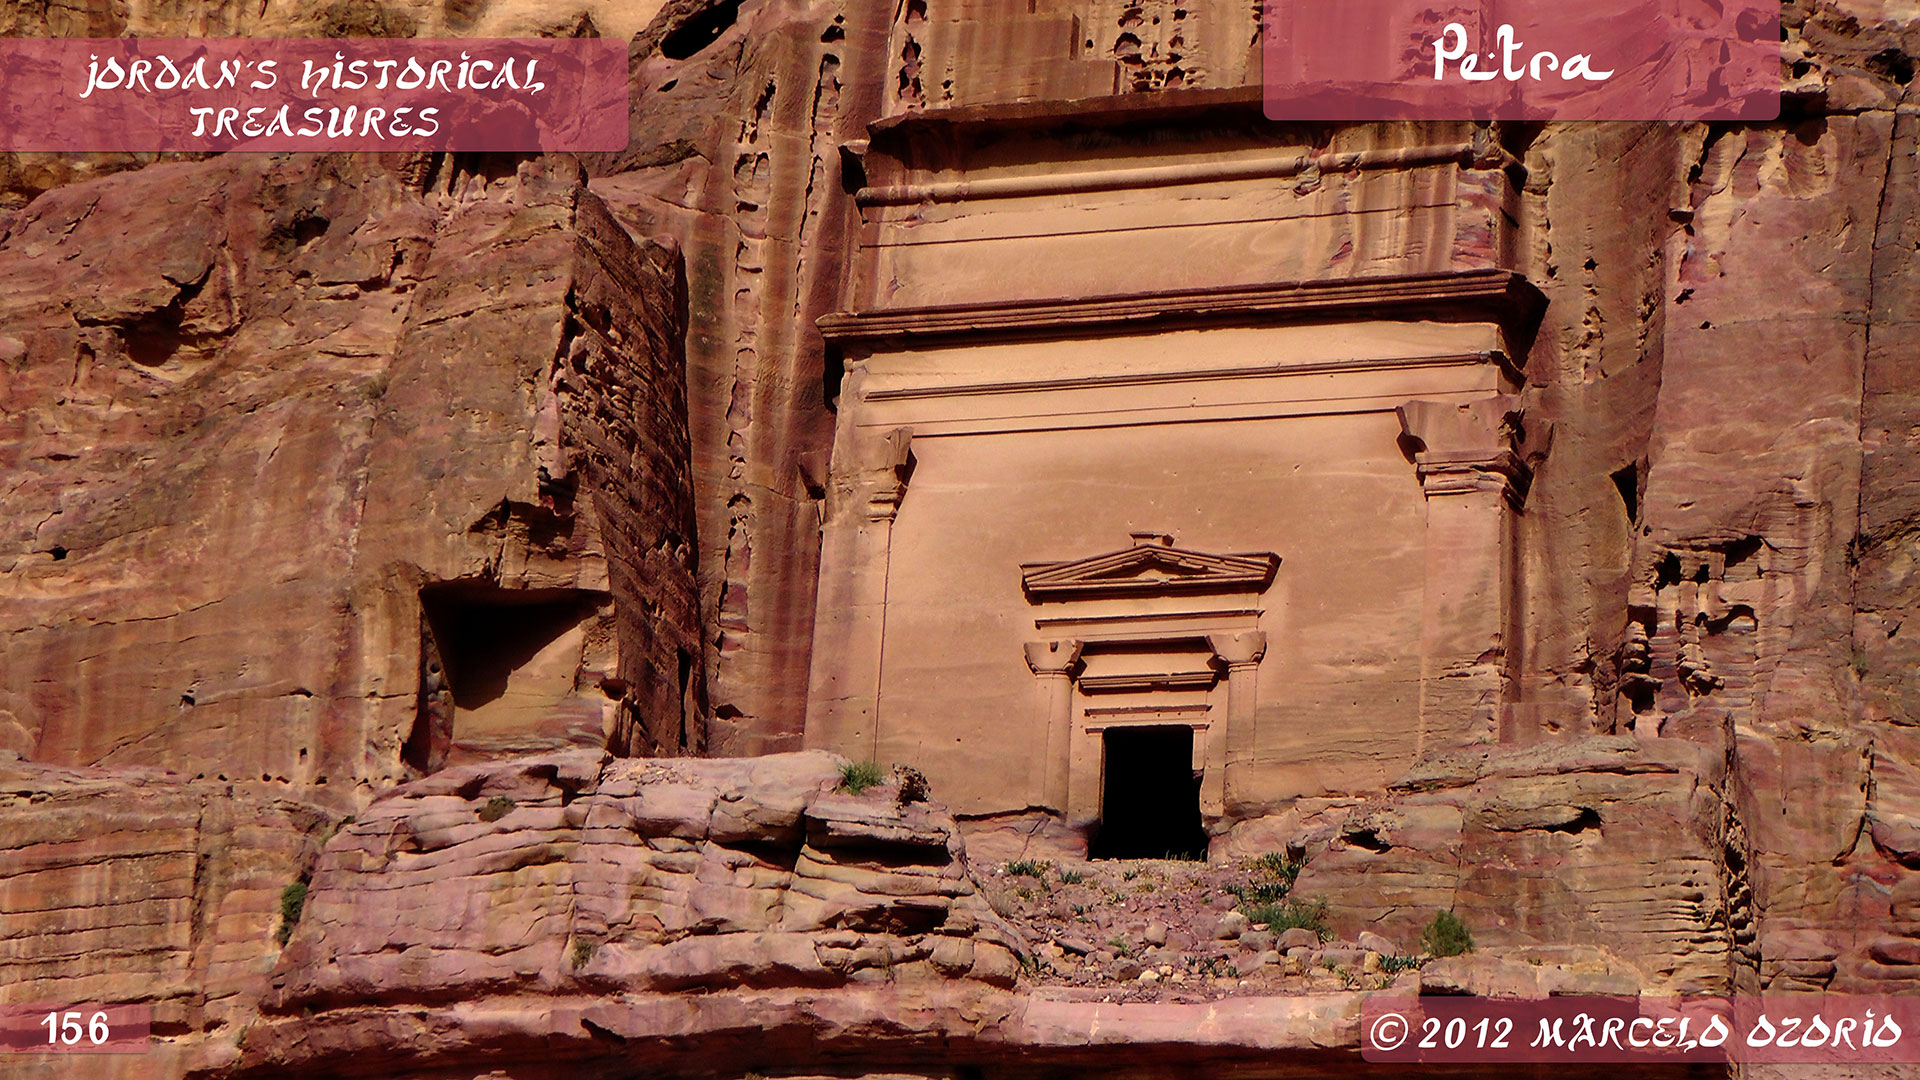 Petra Archaeological City Jordan 76 - The Astonishing Treasure at Petra - Jordan